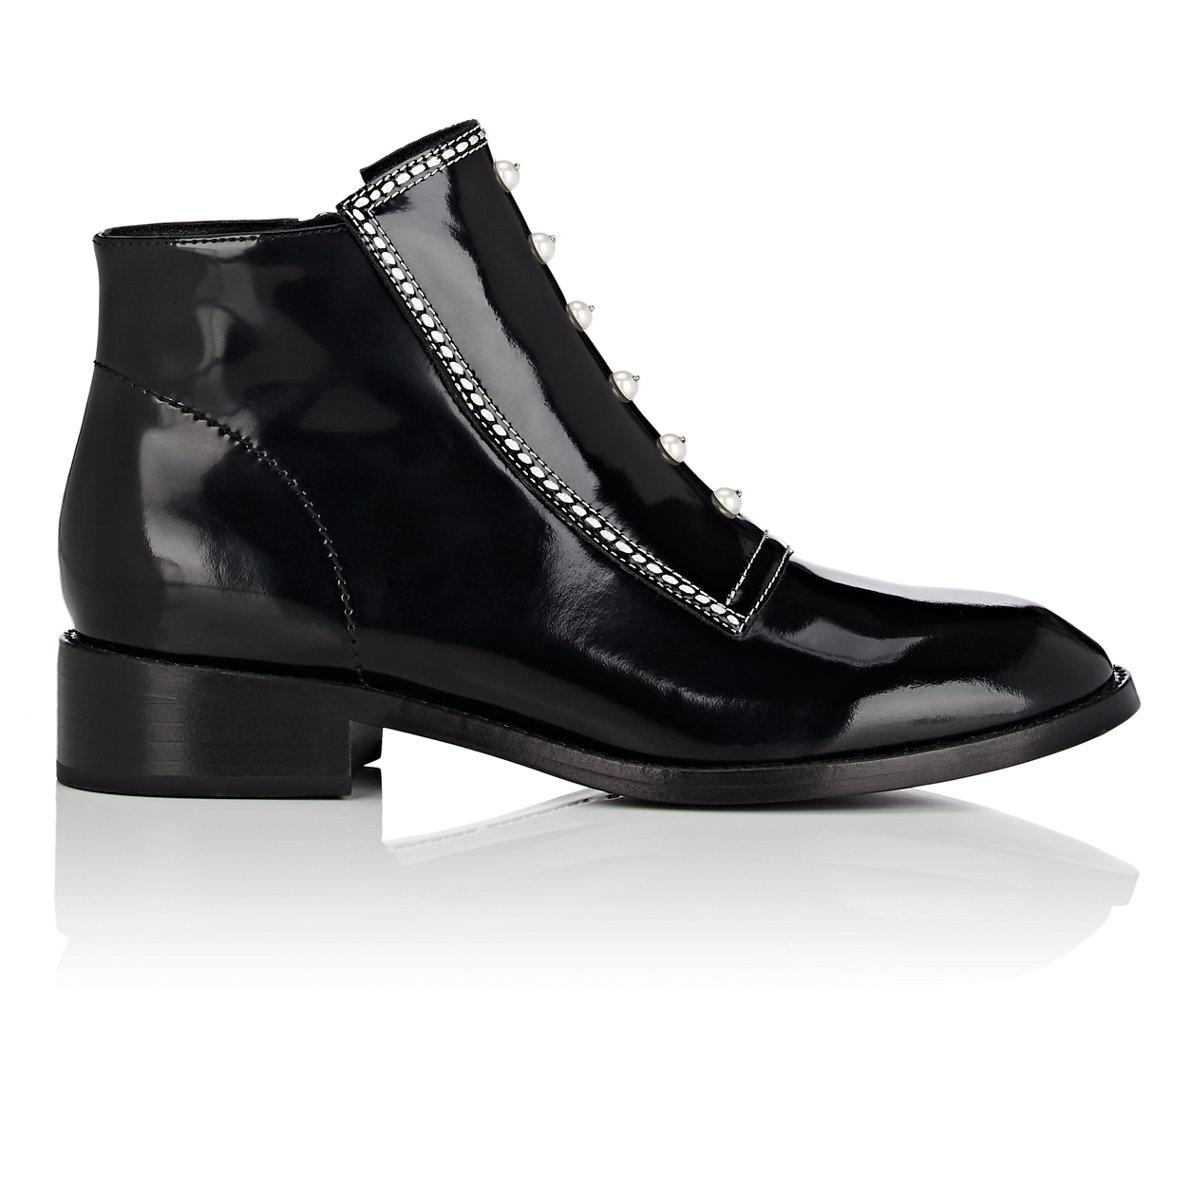 enjoy cheap online under 50 dollars Opening Ceremony Leather Ankle Boots kPXDv